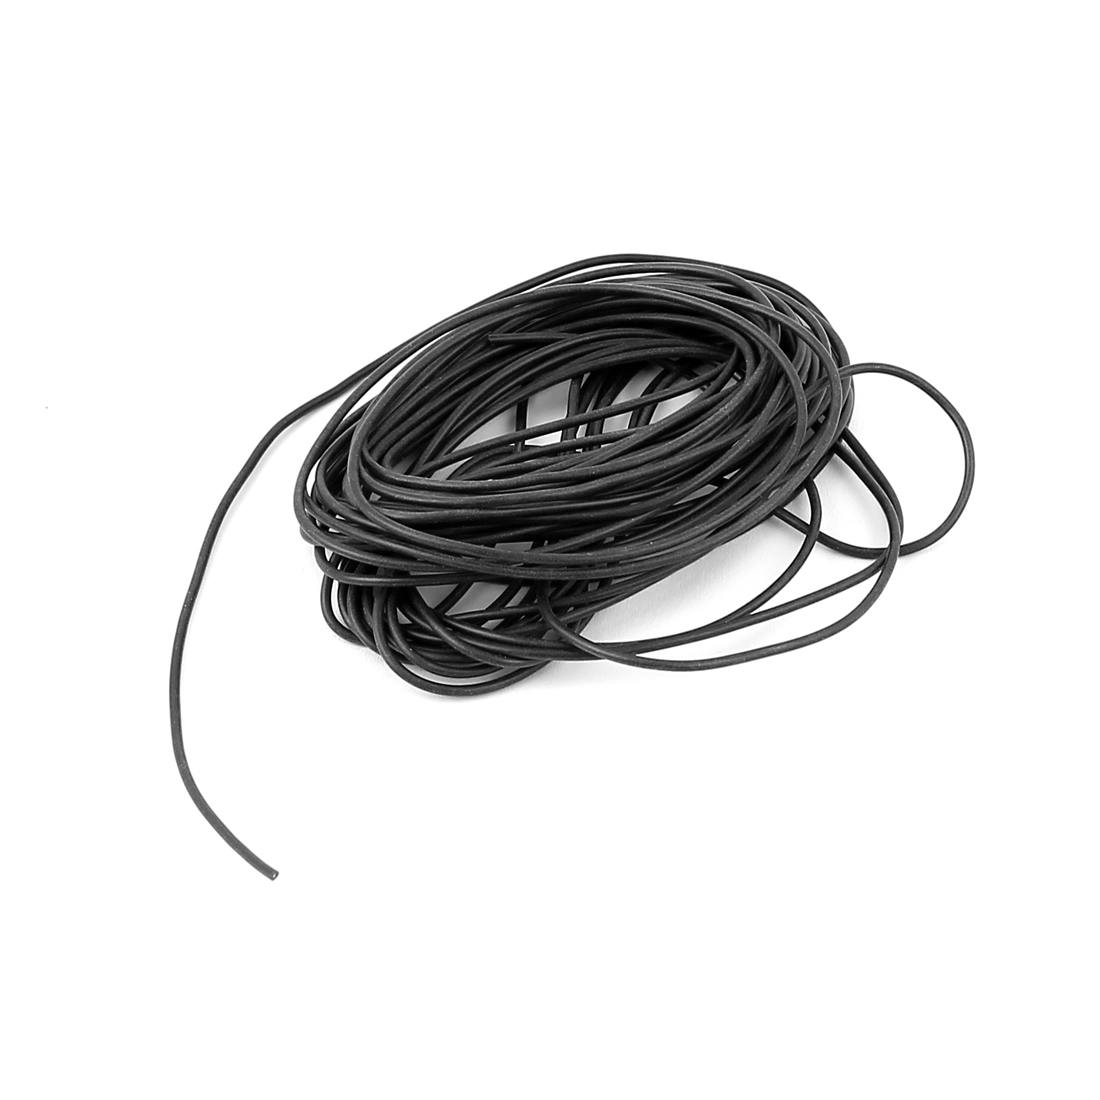 5M 28AWG Electric Copper Core Flexible Silicone Wire Cable Black